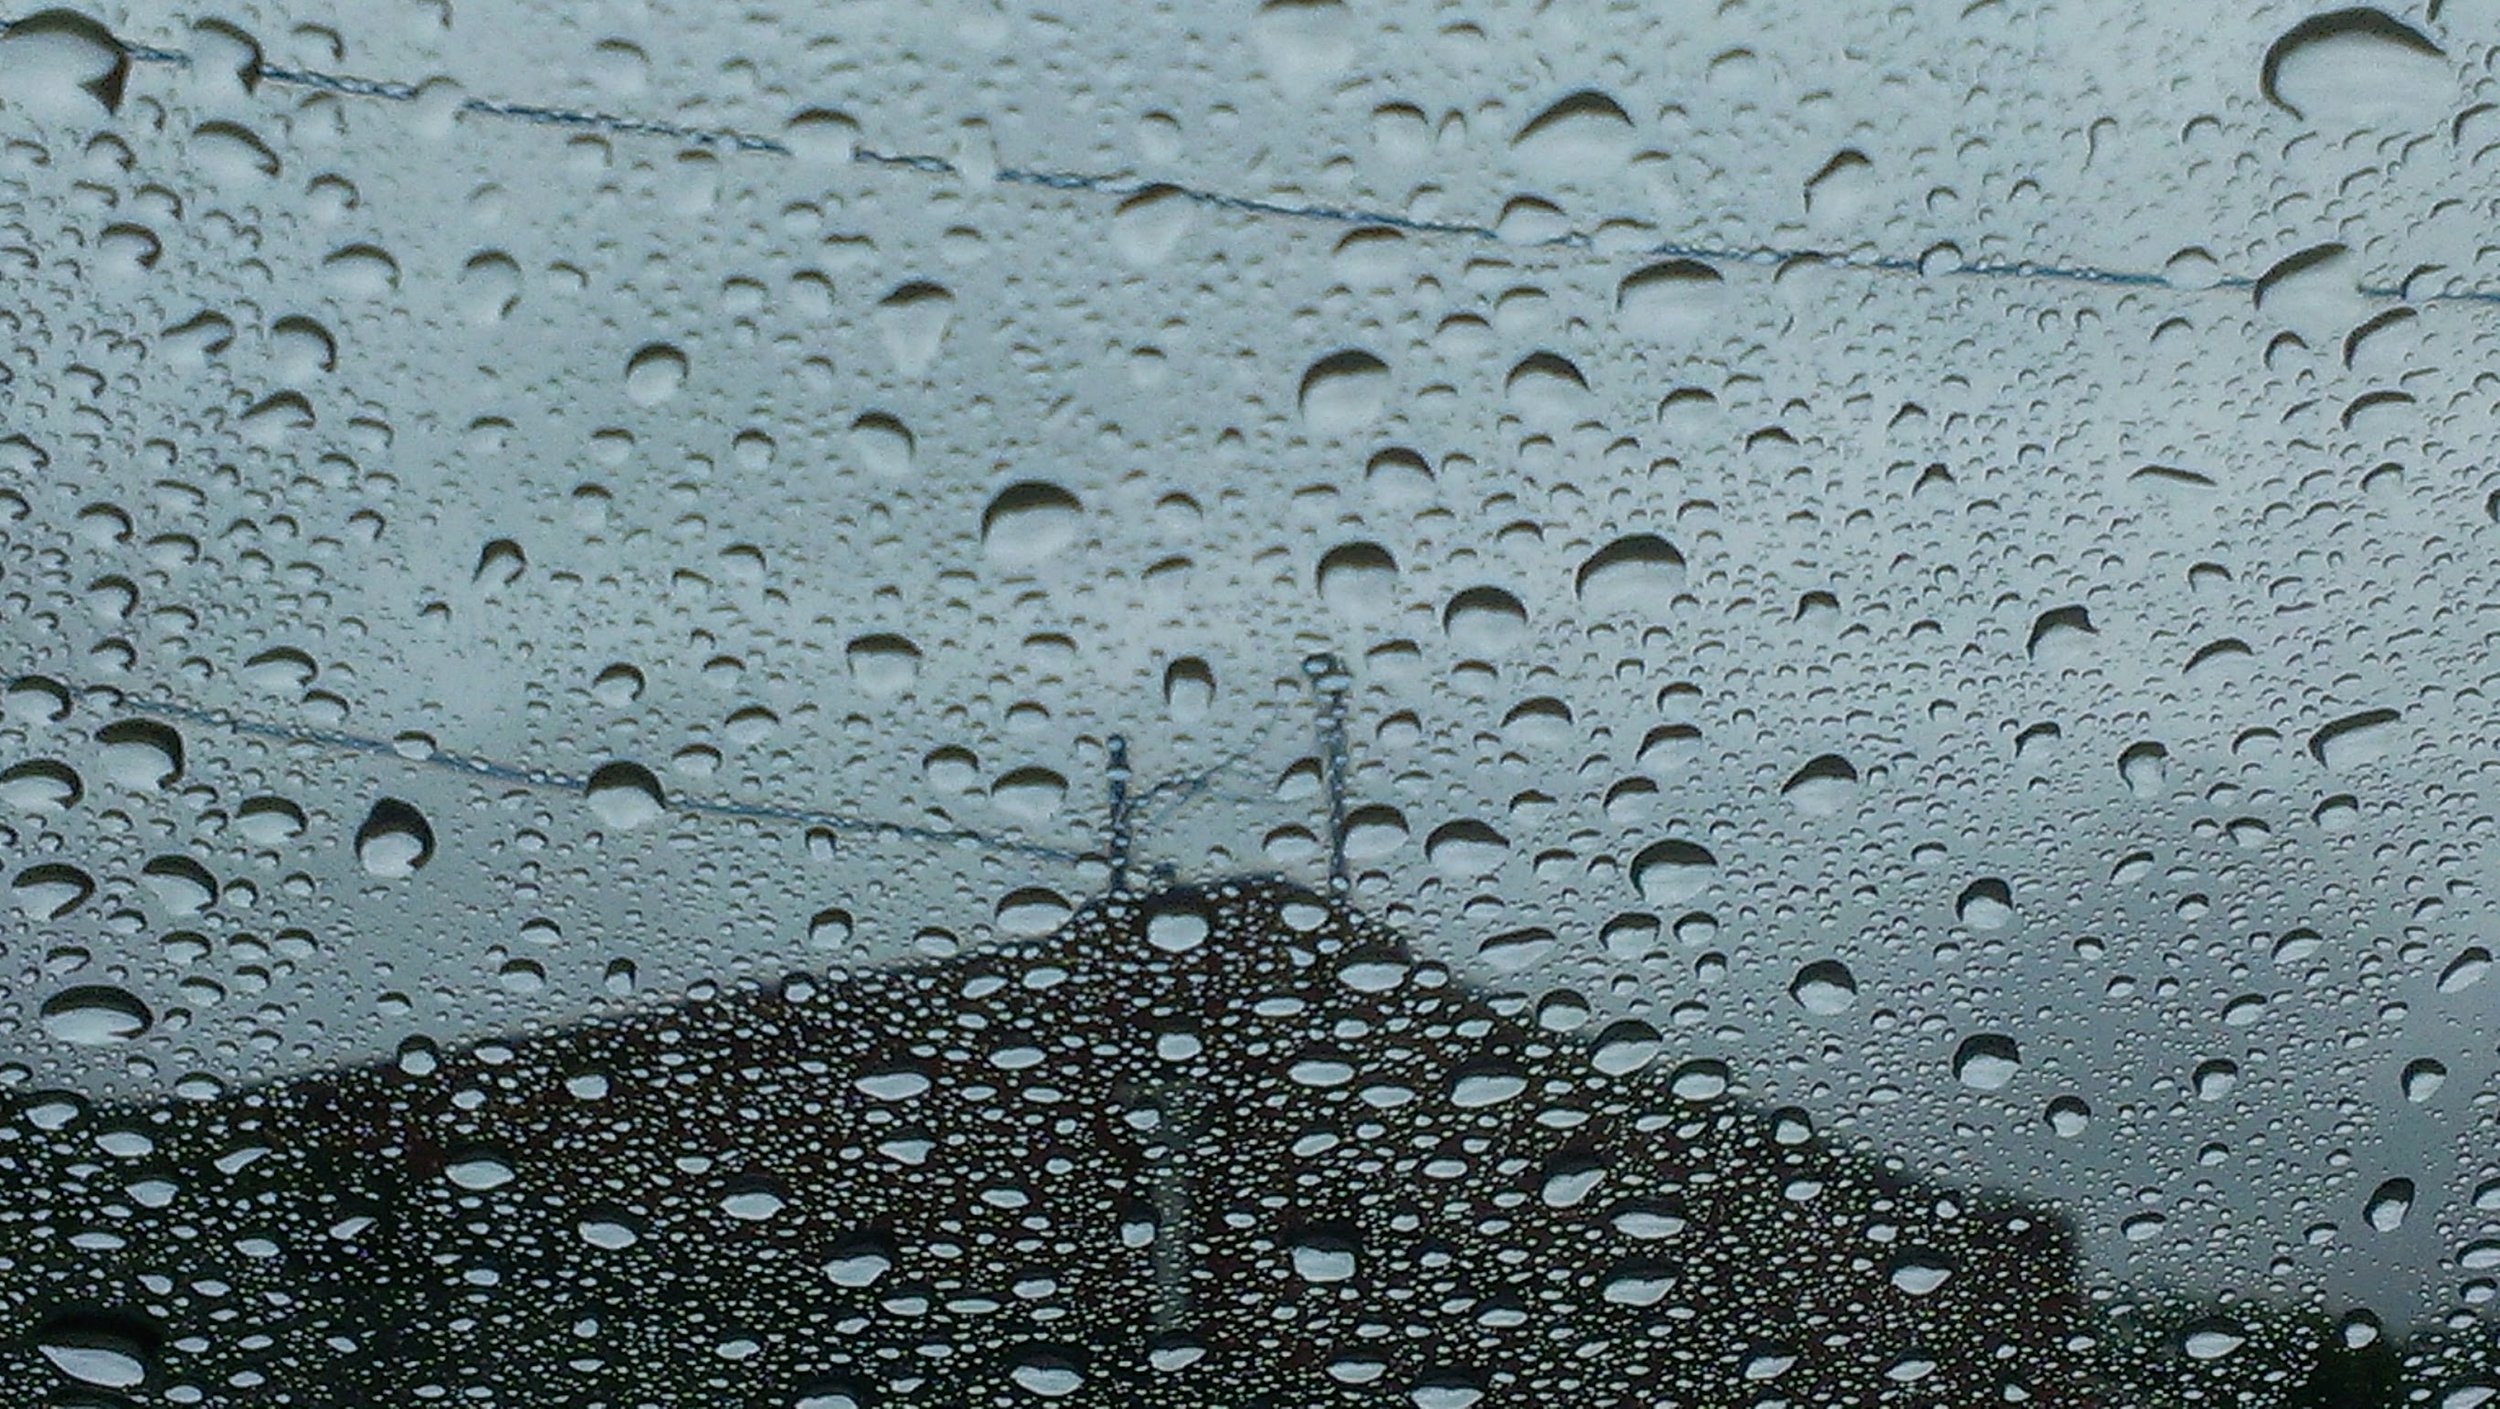 Raindrops on rooftops.